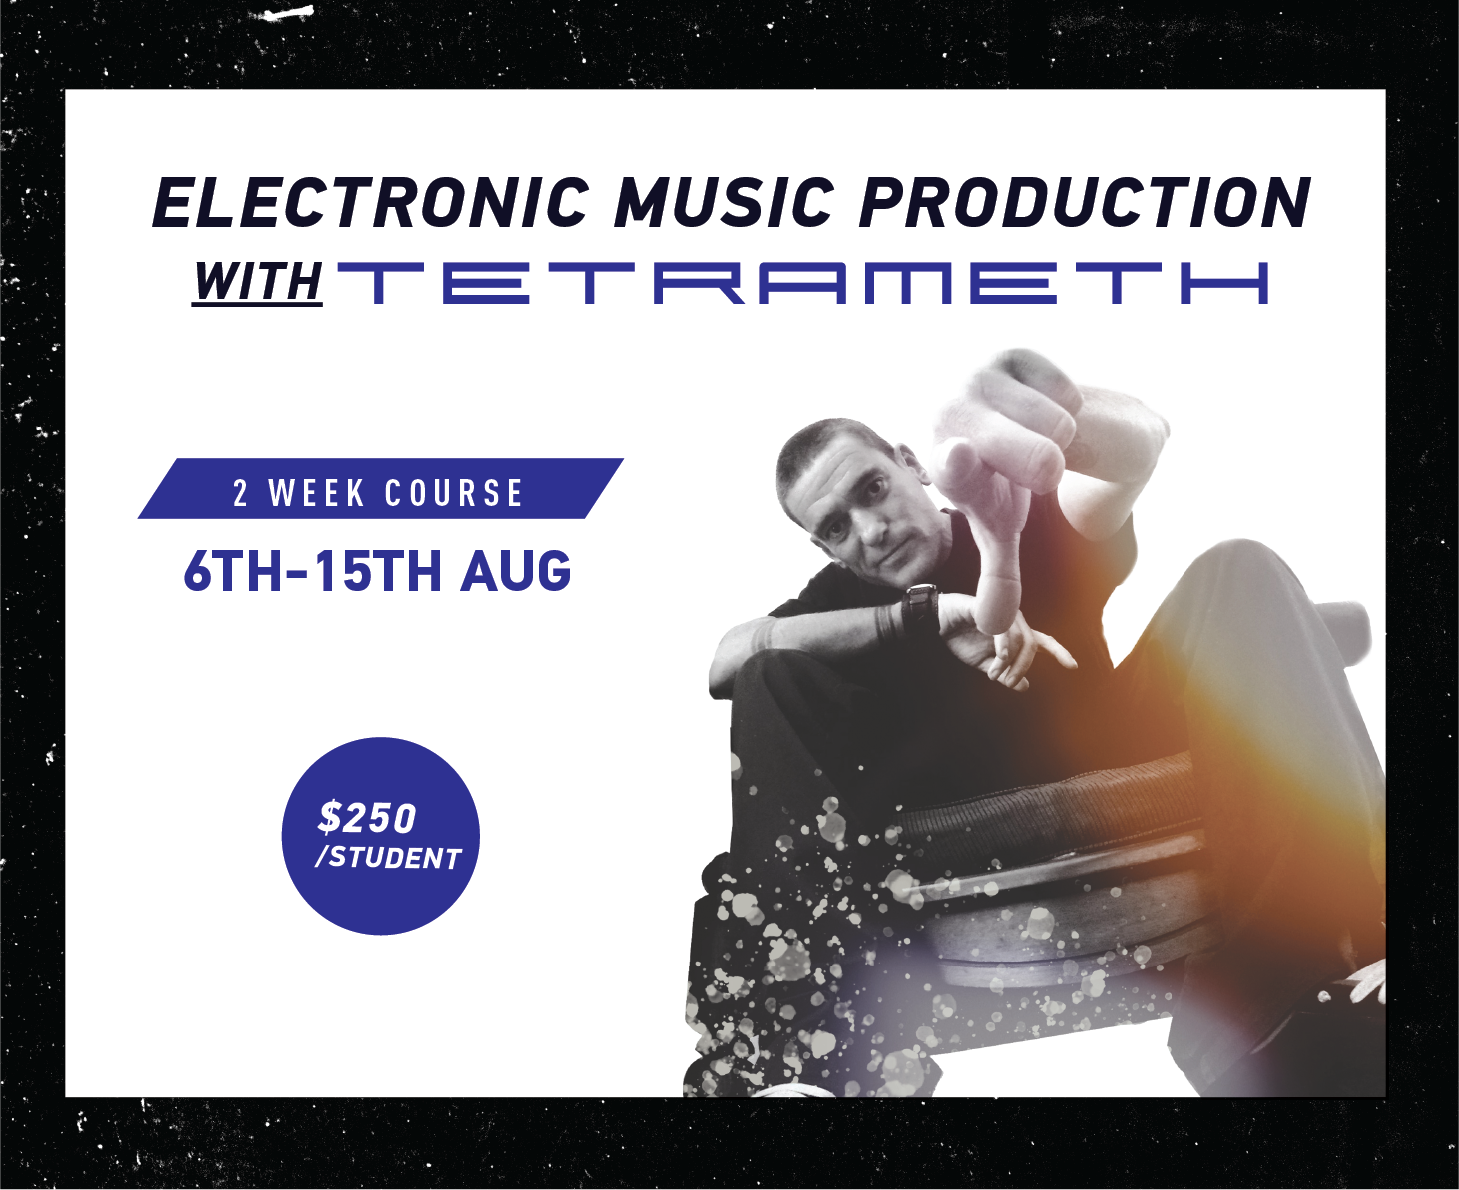 Electronic Music course